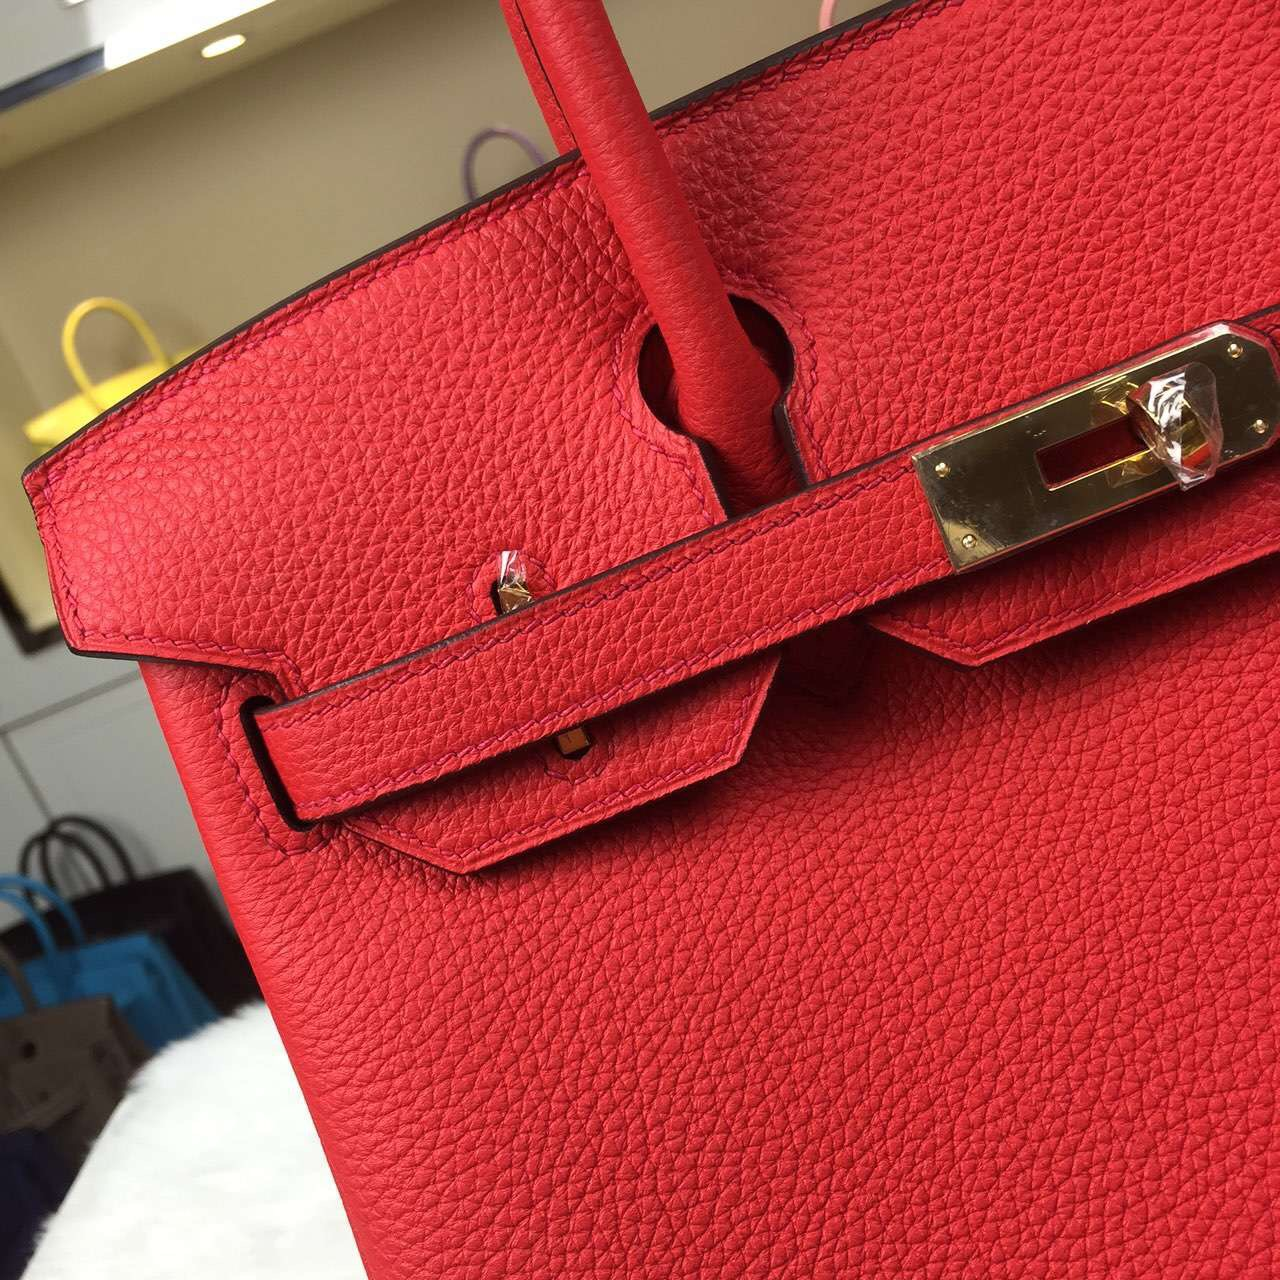 Hand Stitching Hermes Birkin30 Togo Calfskin Leather in 2R Peony Red Handbag